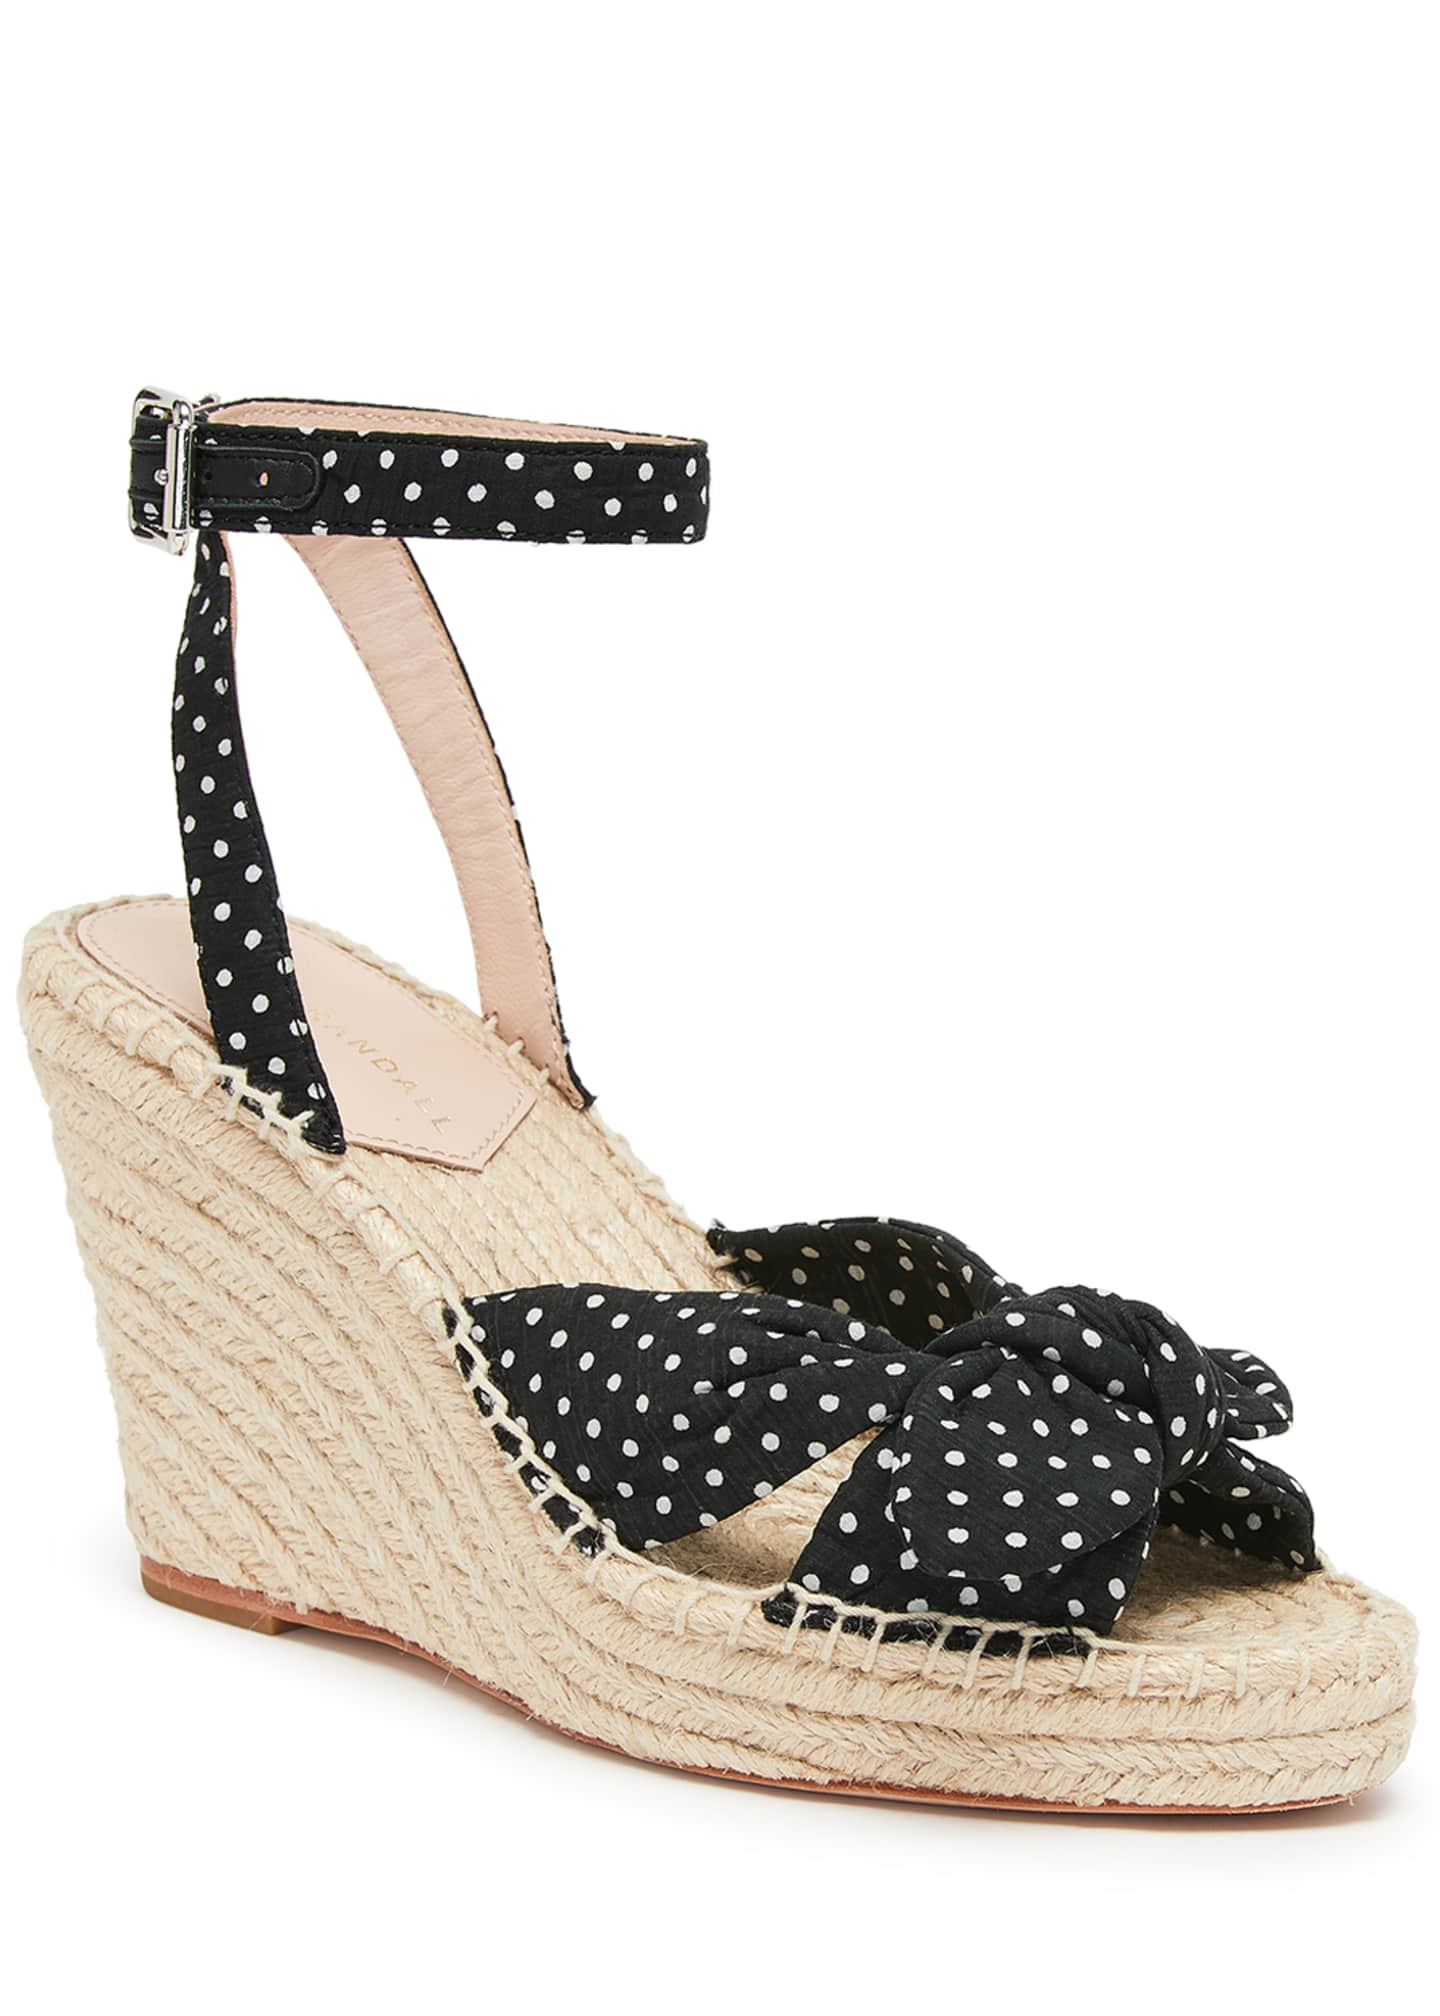 Loeffler Randall Tessa 80mm Dot Bow Wedge Espadrilles